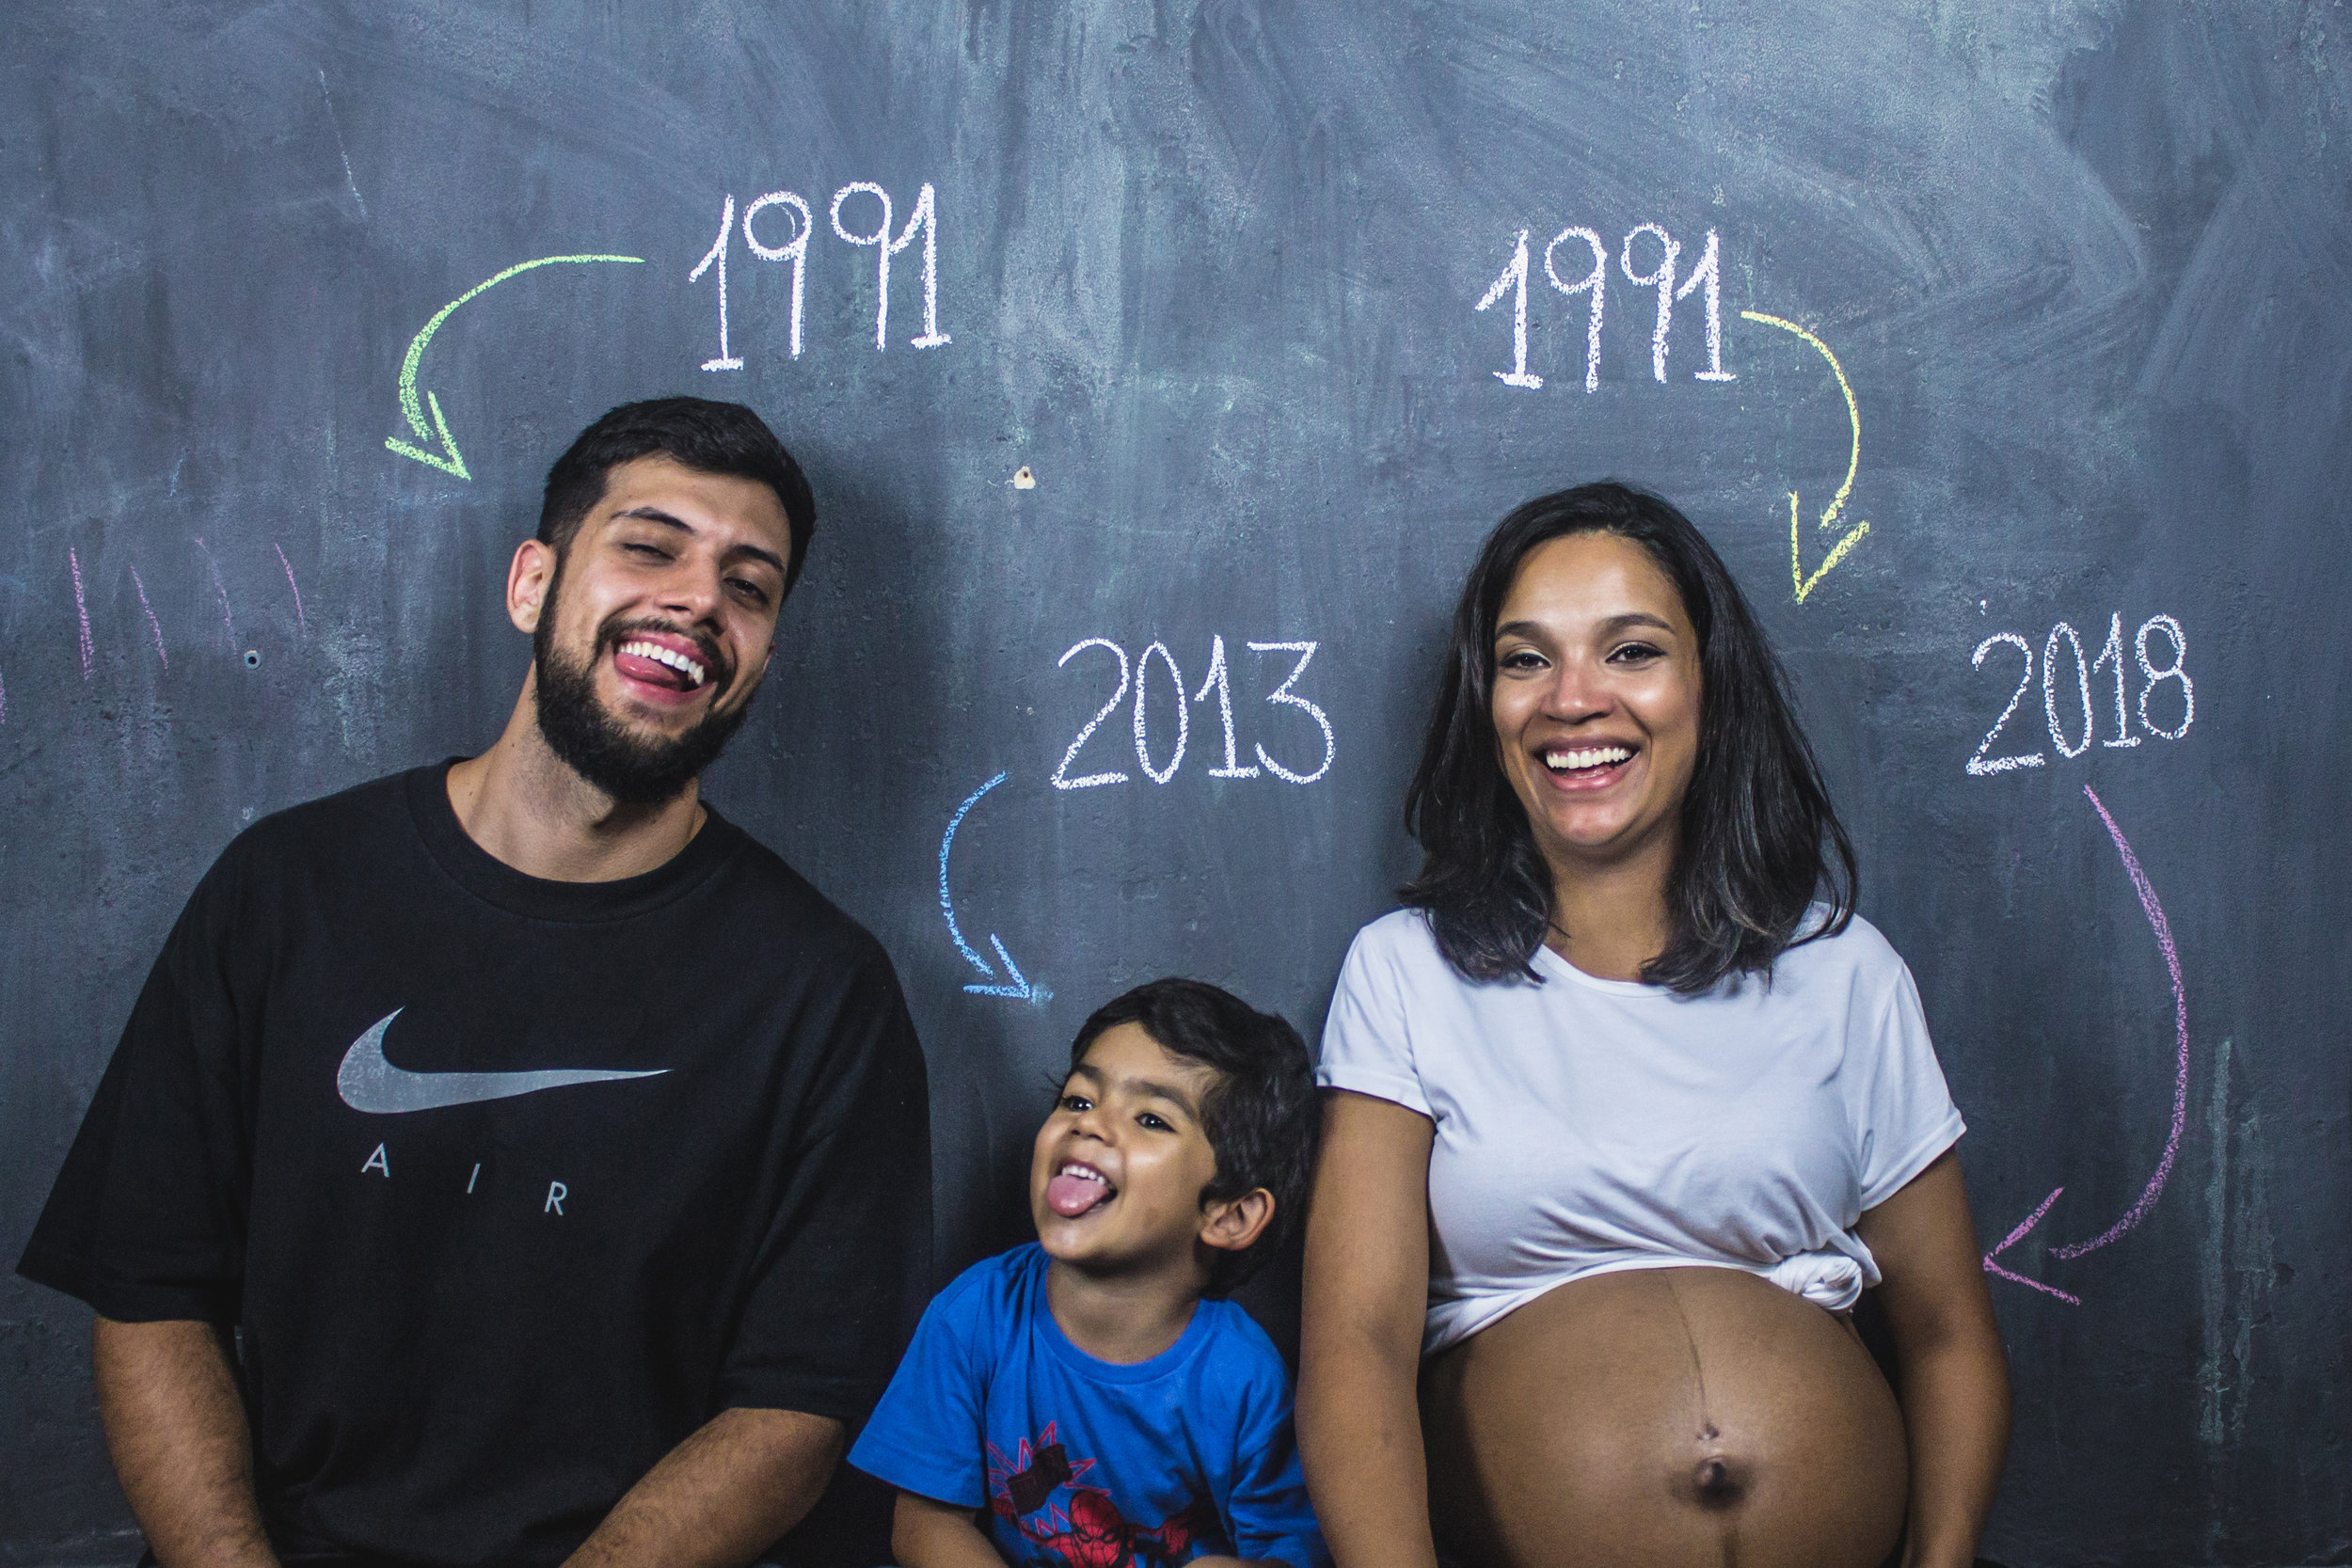 Taking pregnancy photos with older siblings